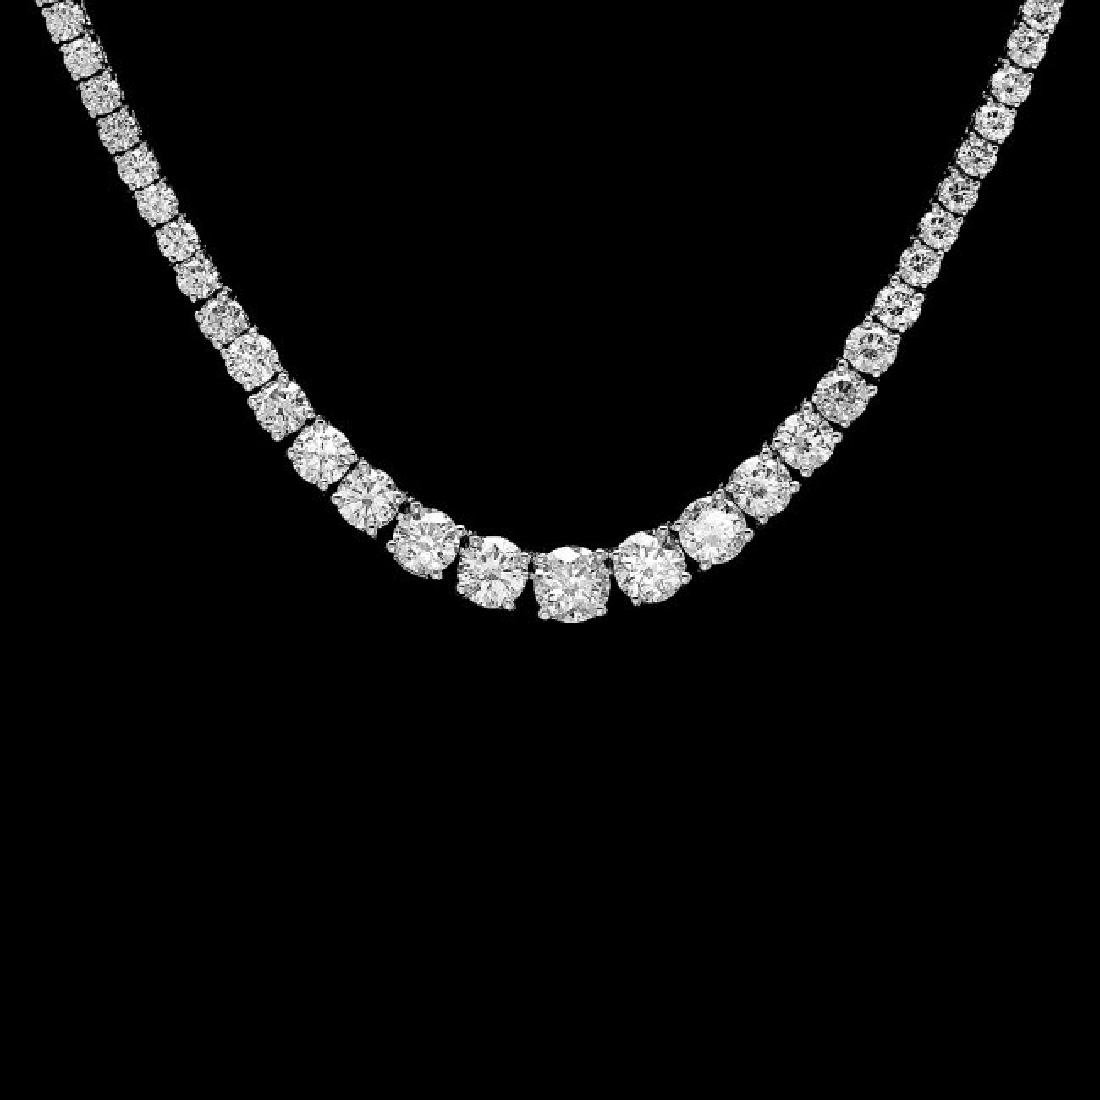 18k White Gold 13.00ct Diamond Necklace